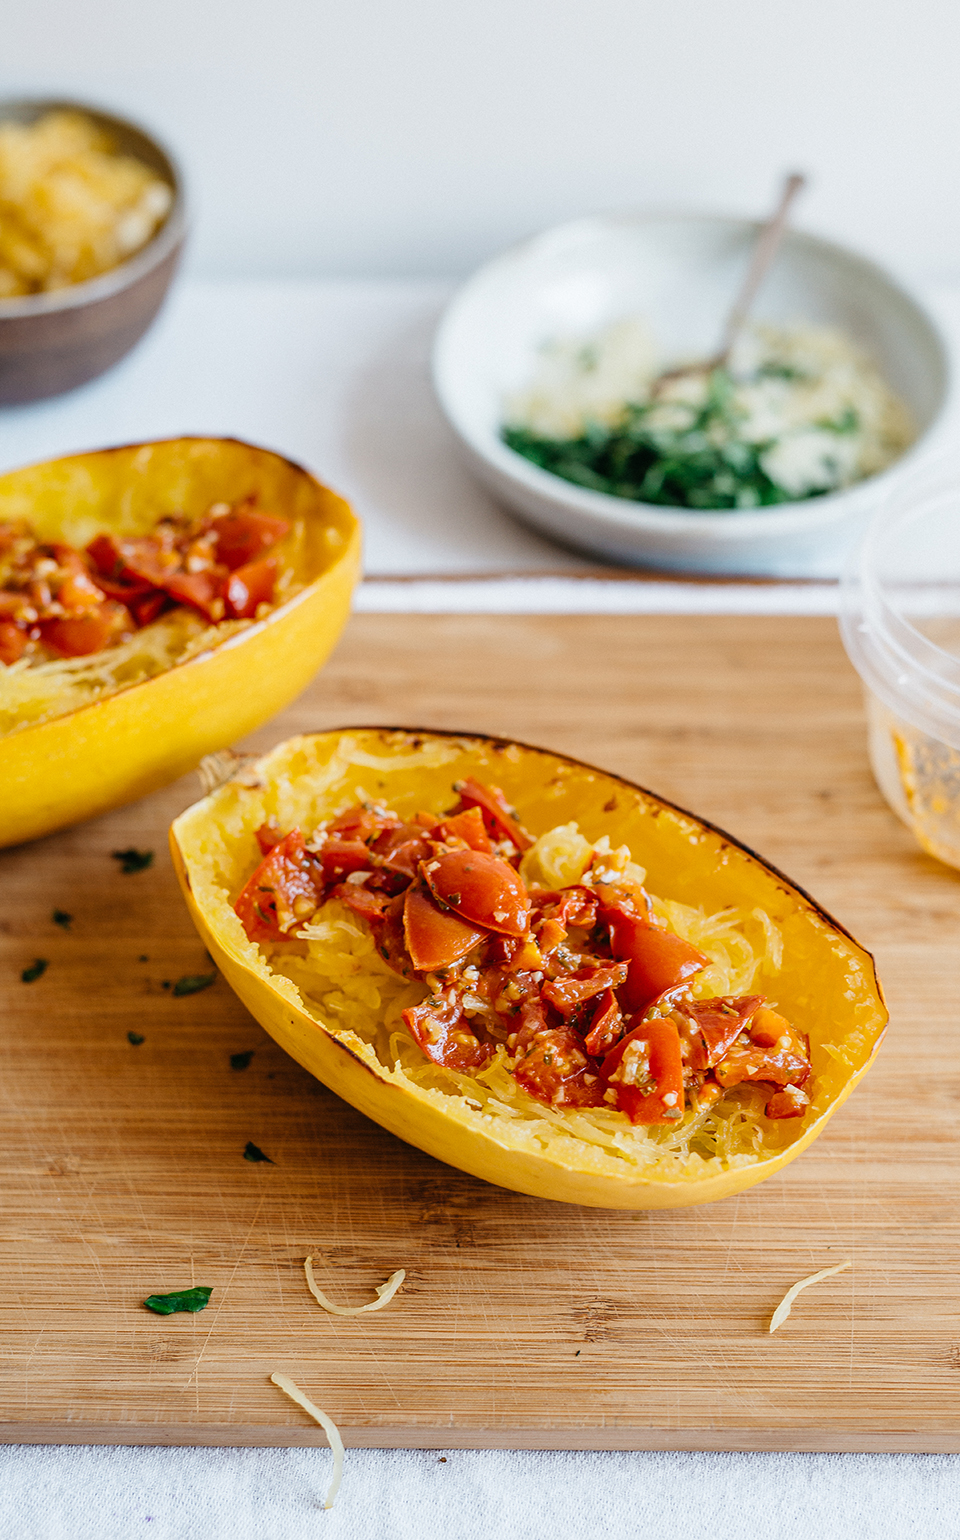 Spaghetti Squash with Roasted Tomatoes, Mozzarella, and Pine Nuts